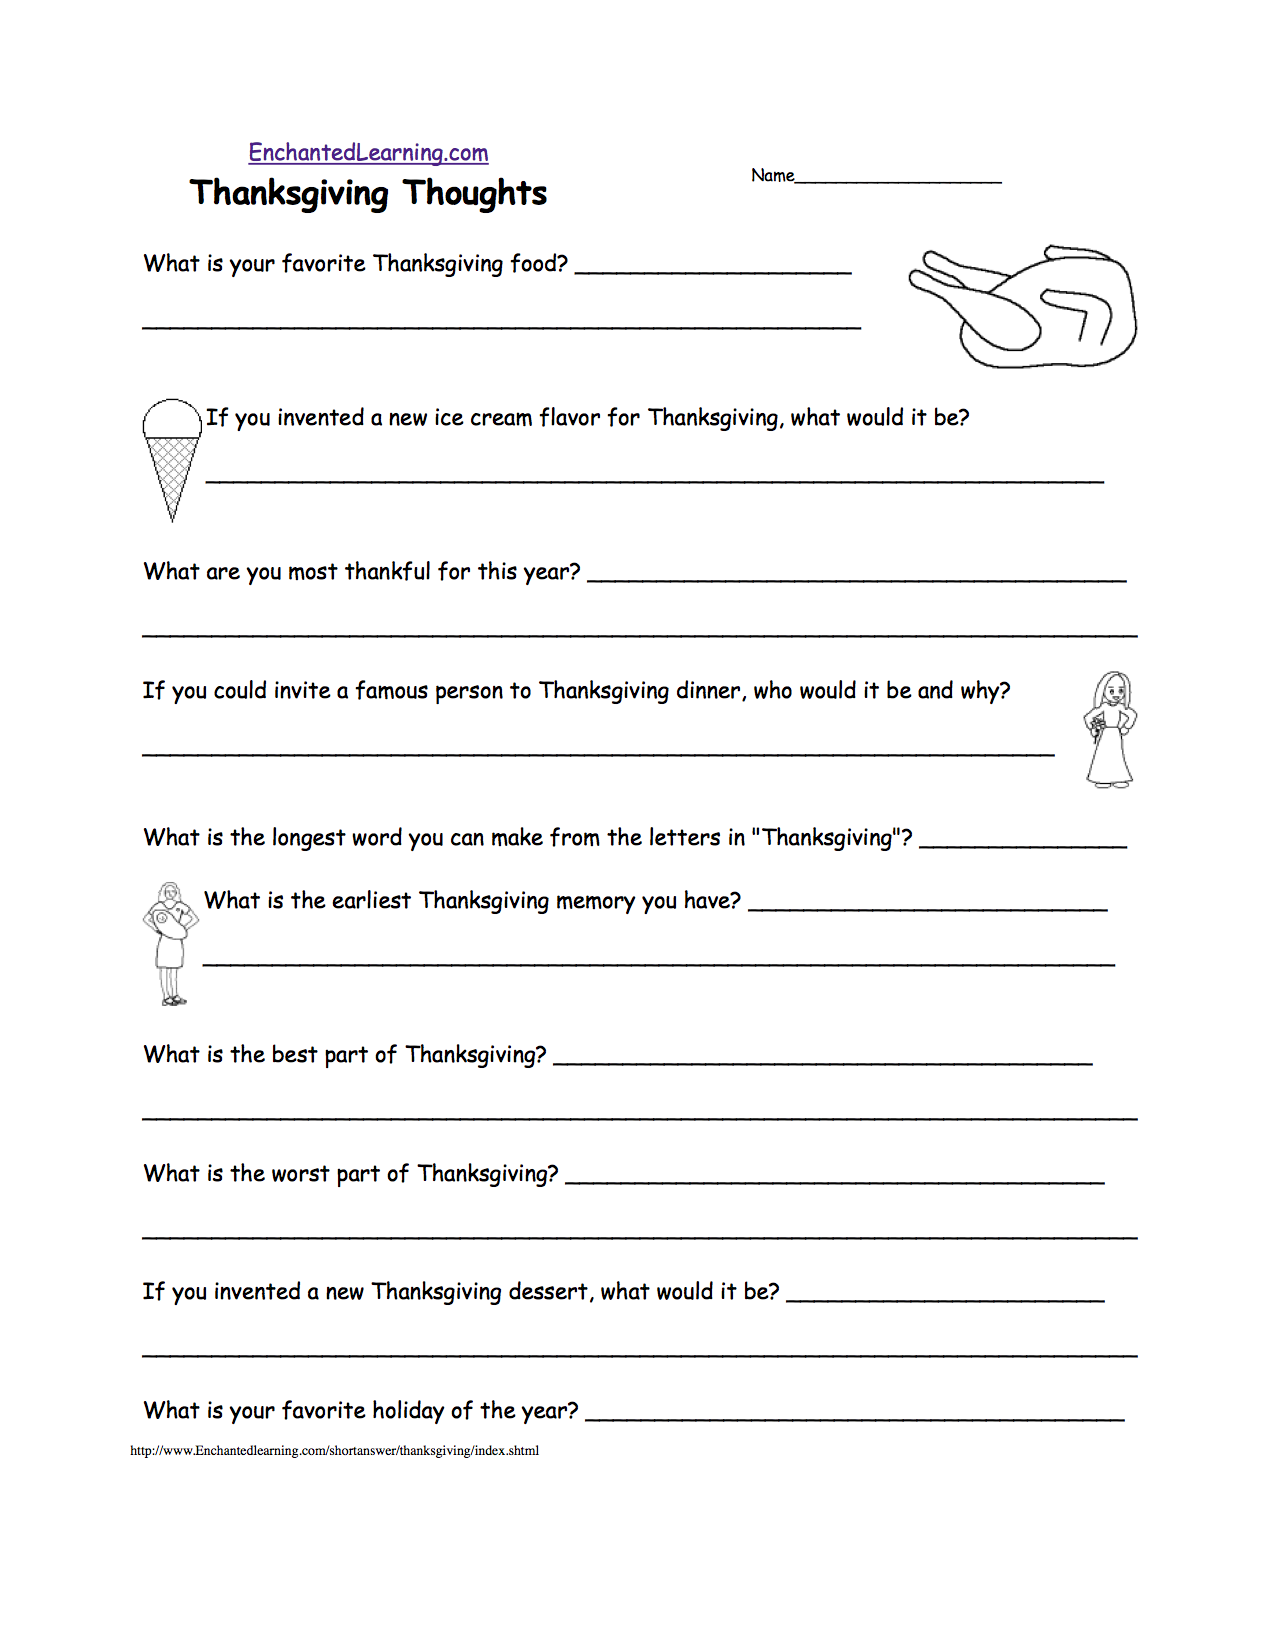 Worksheets Thanksgiving Worksheets For Kids thanksgiving crafts worksheets and activities thanksgiving